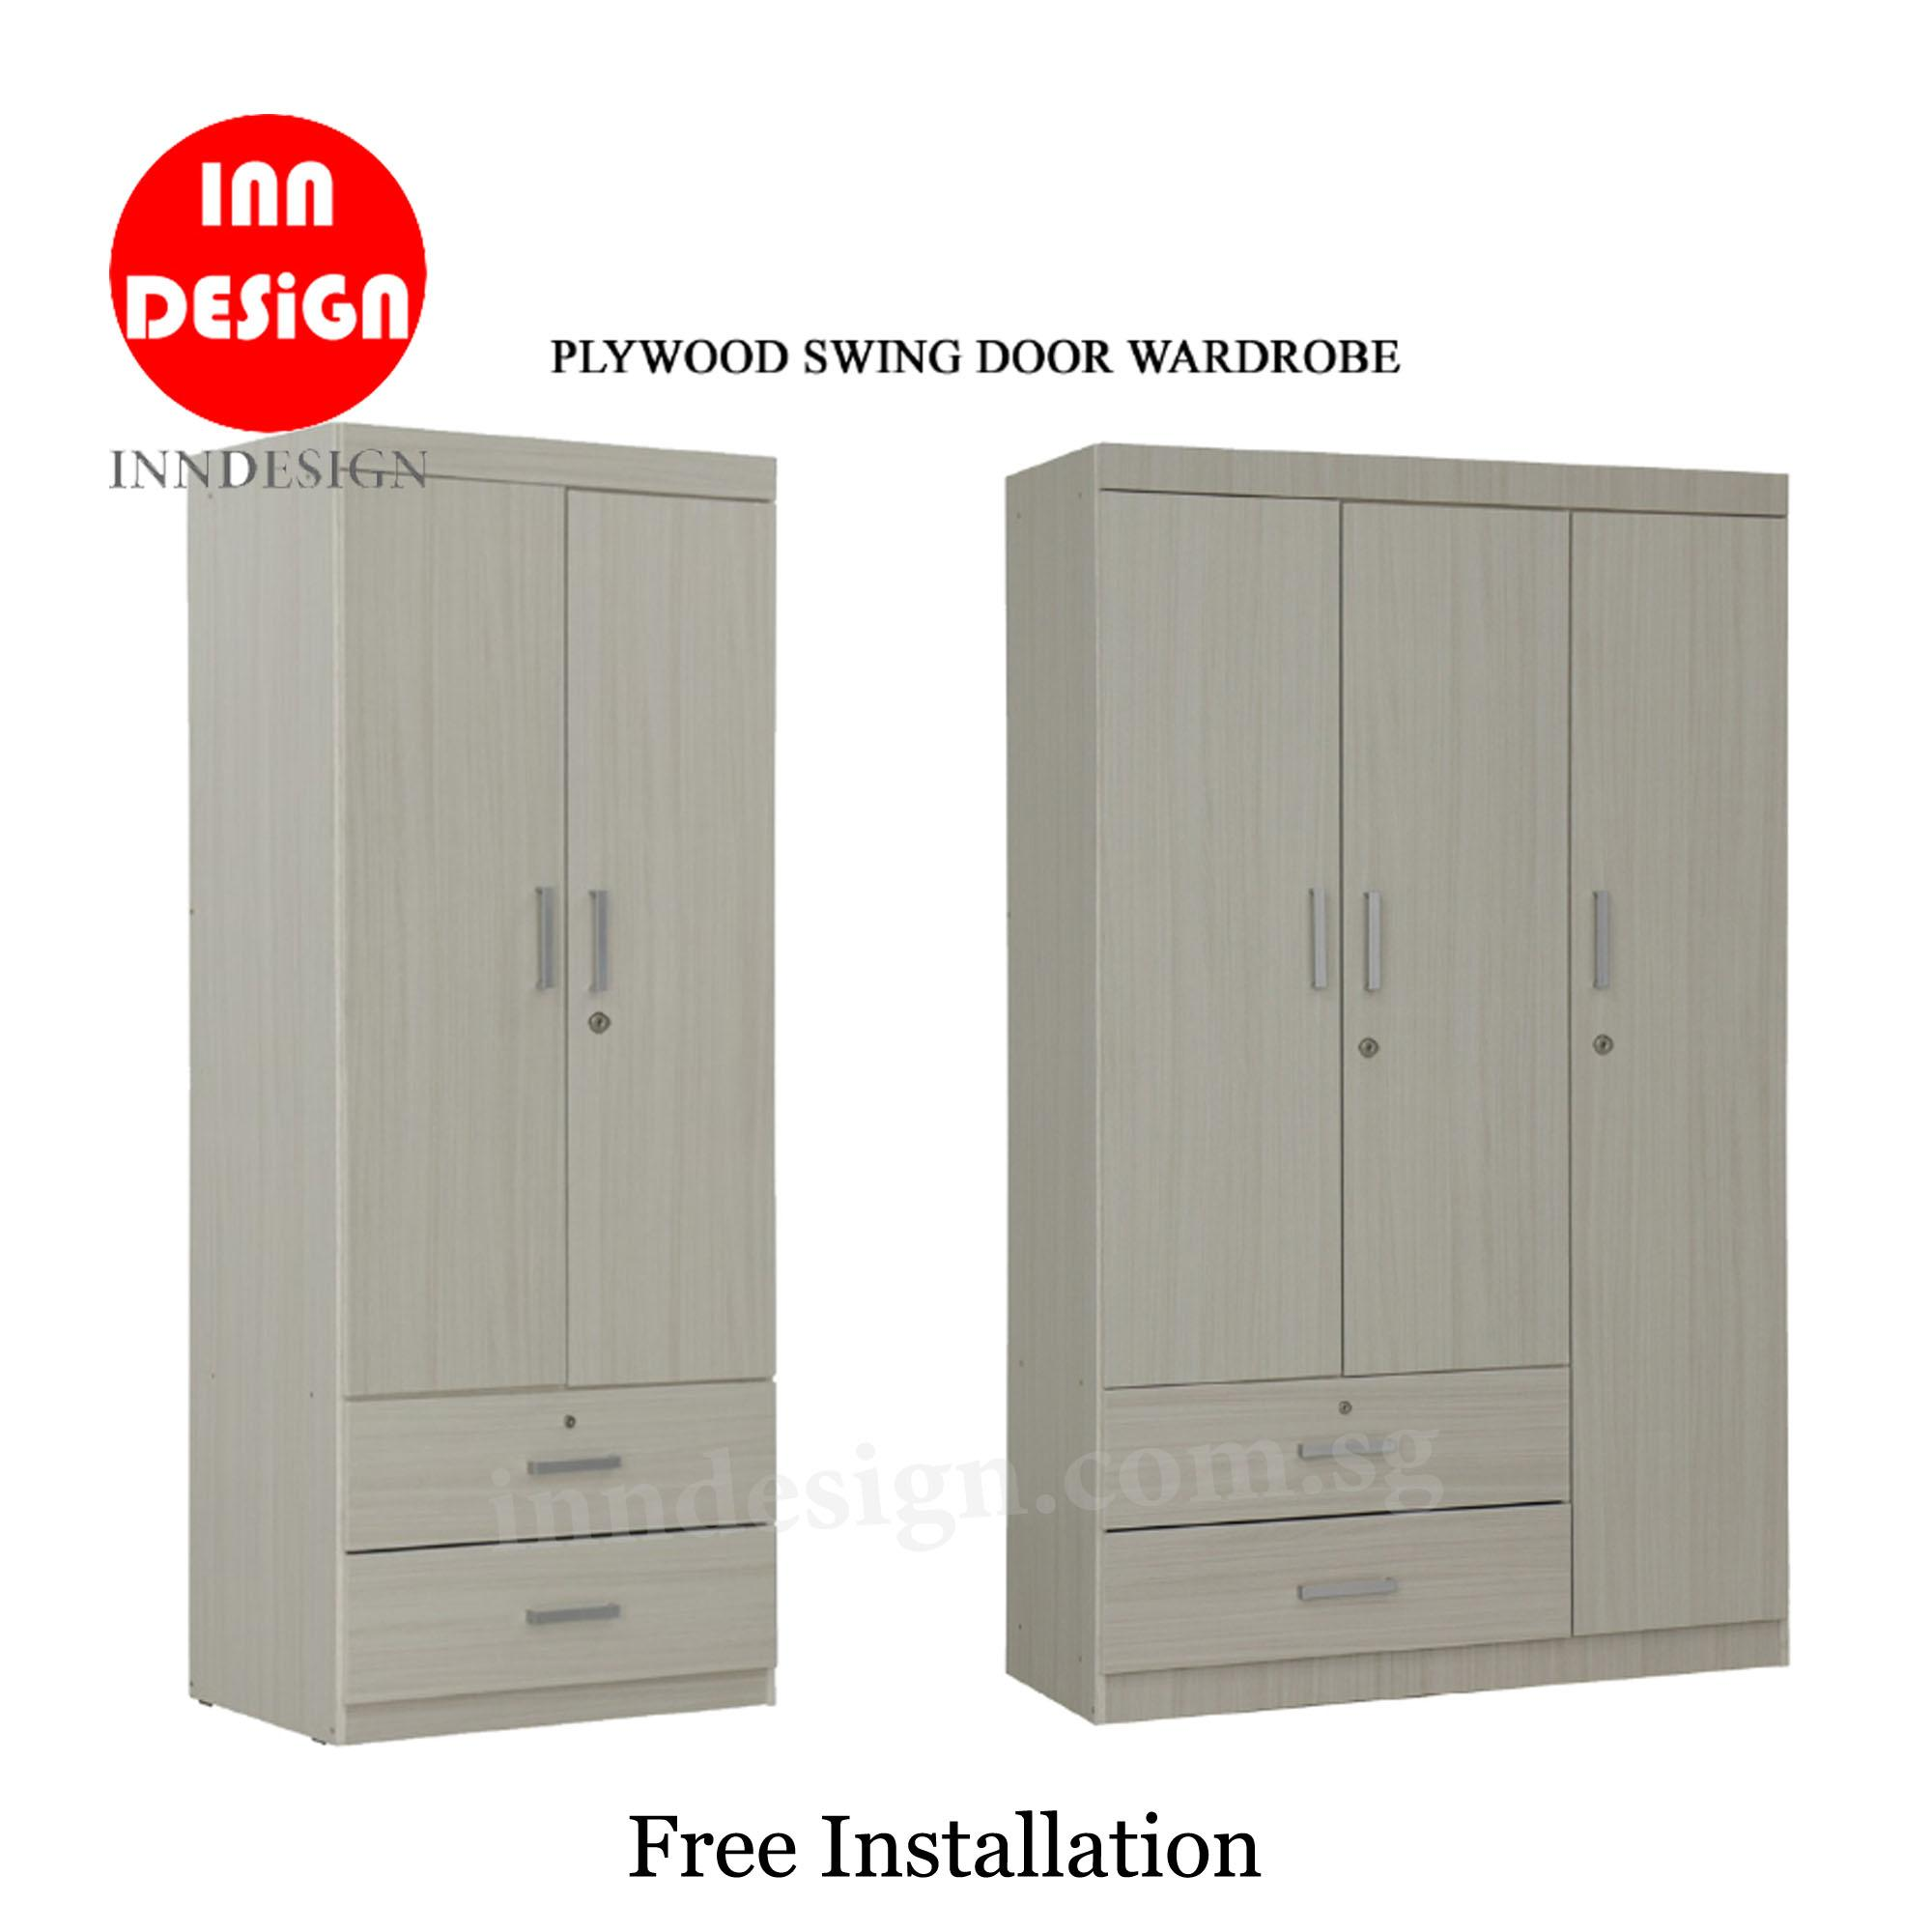 Orine 2/3 Doors Plywood Wardrobe (Free Installation and Delivery)